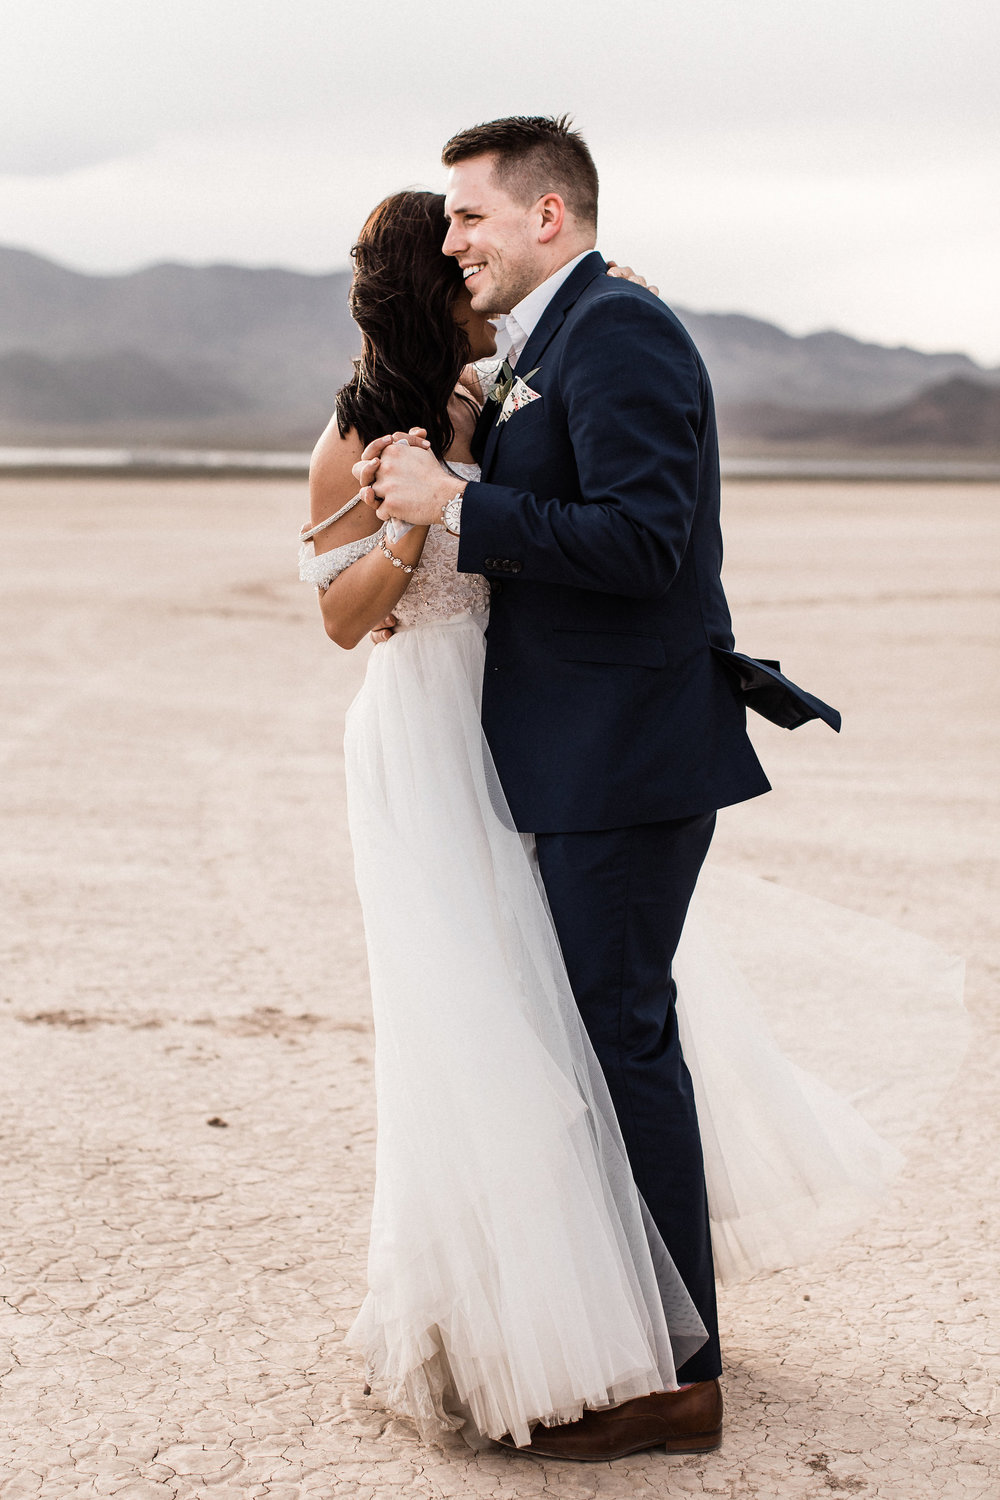 las vegas dry lake bed florapop wedding00022.jpg